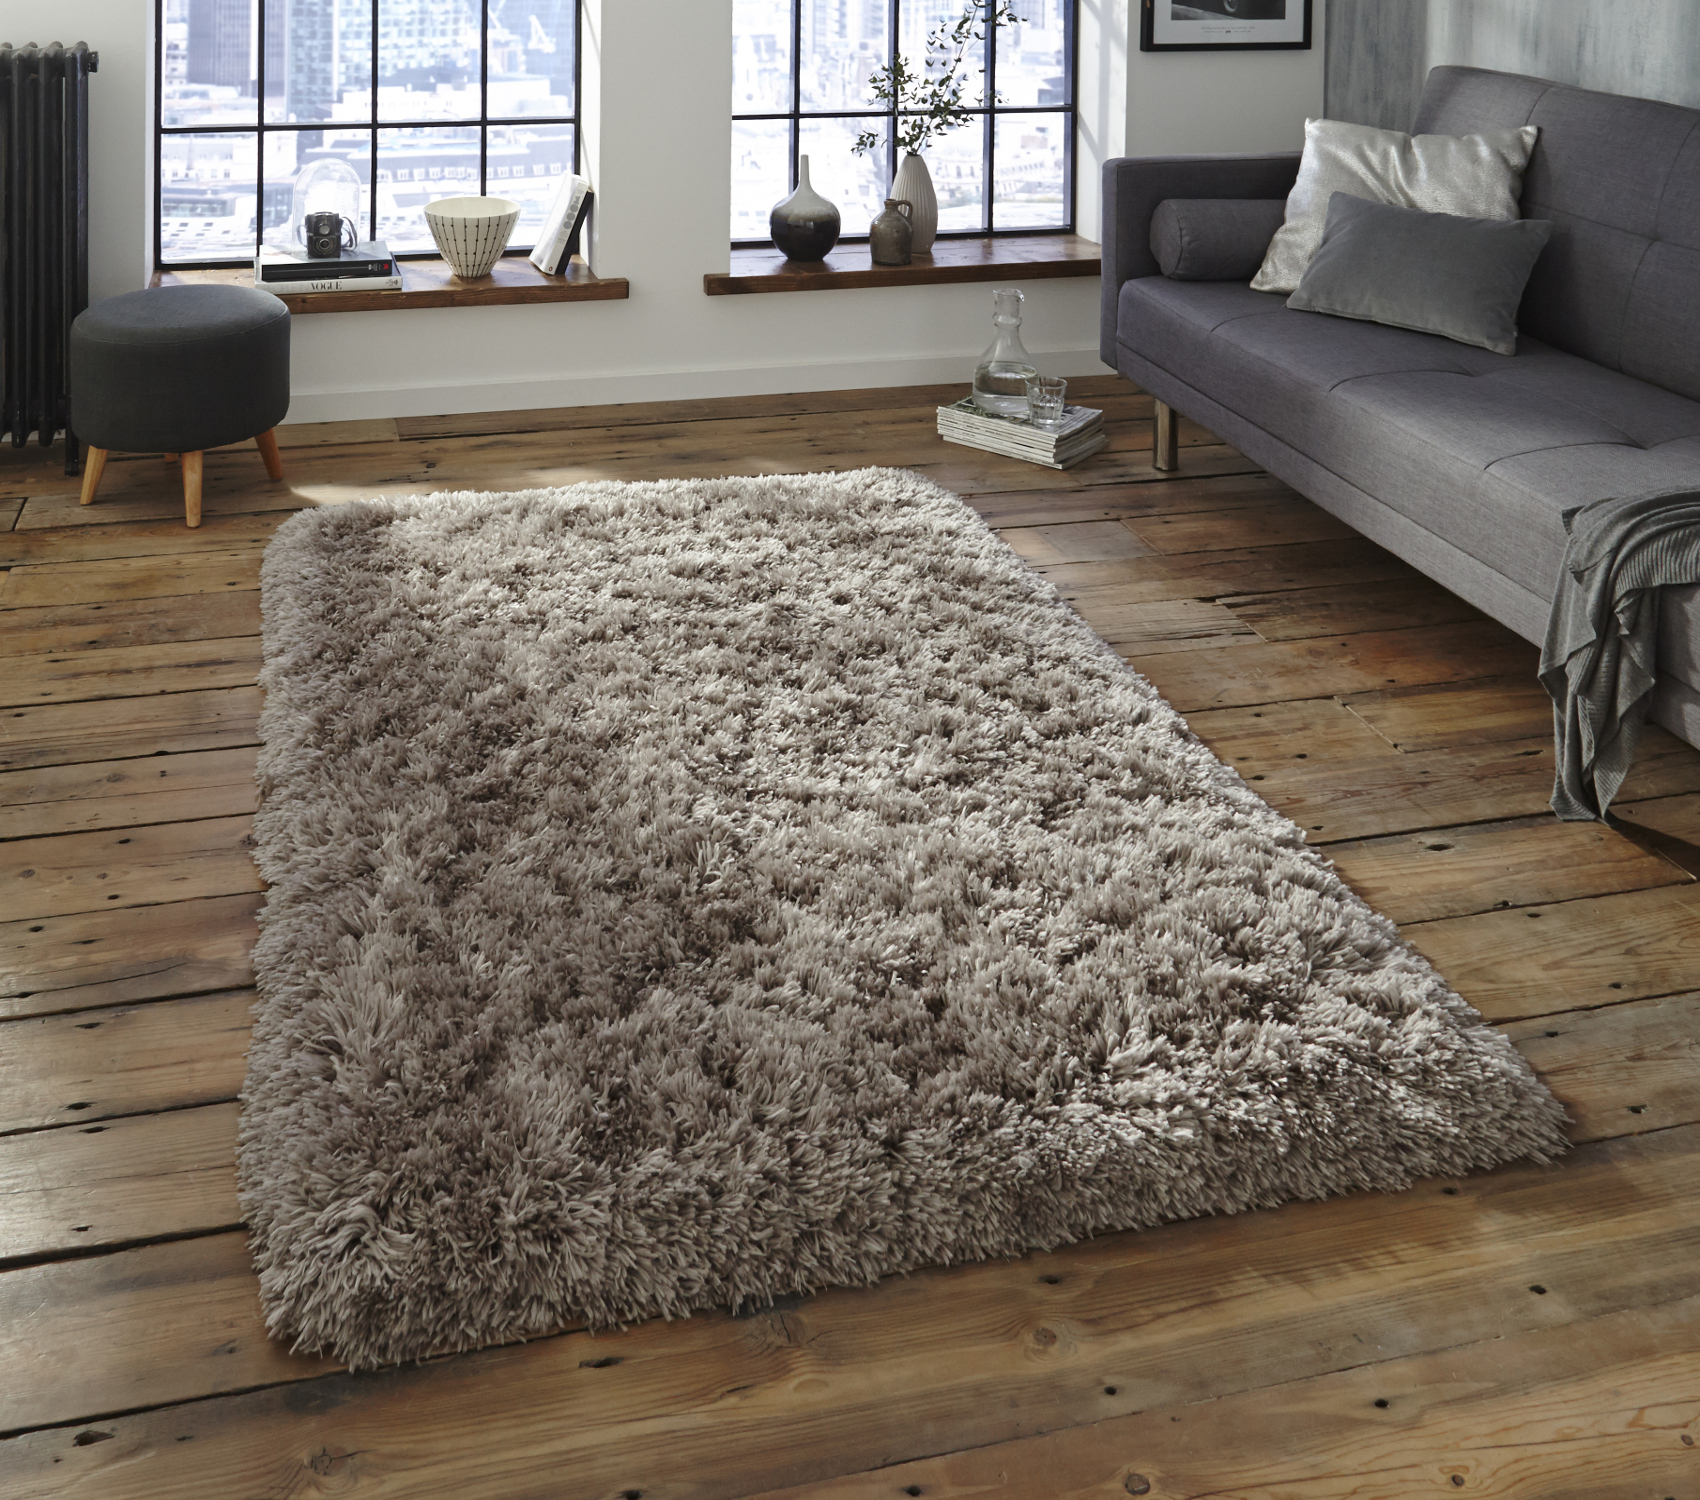 Grey Thick Shaggy 8 5cm Pile Rug Luxurious Hand Tufted 100